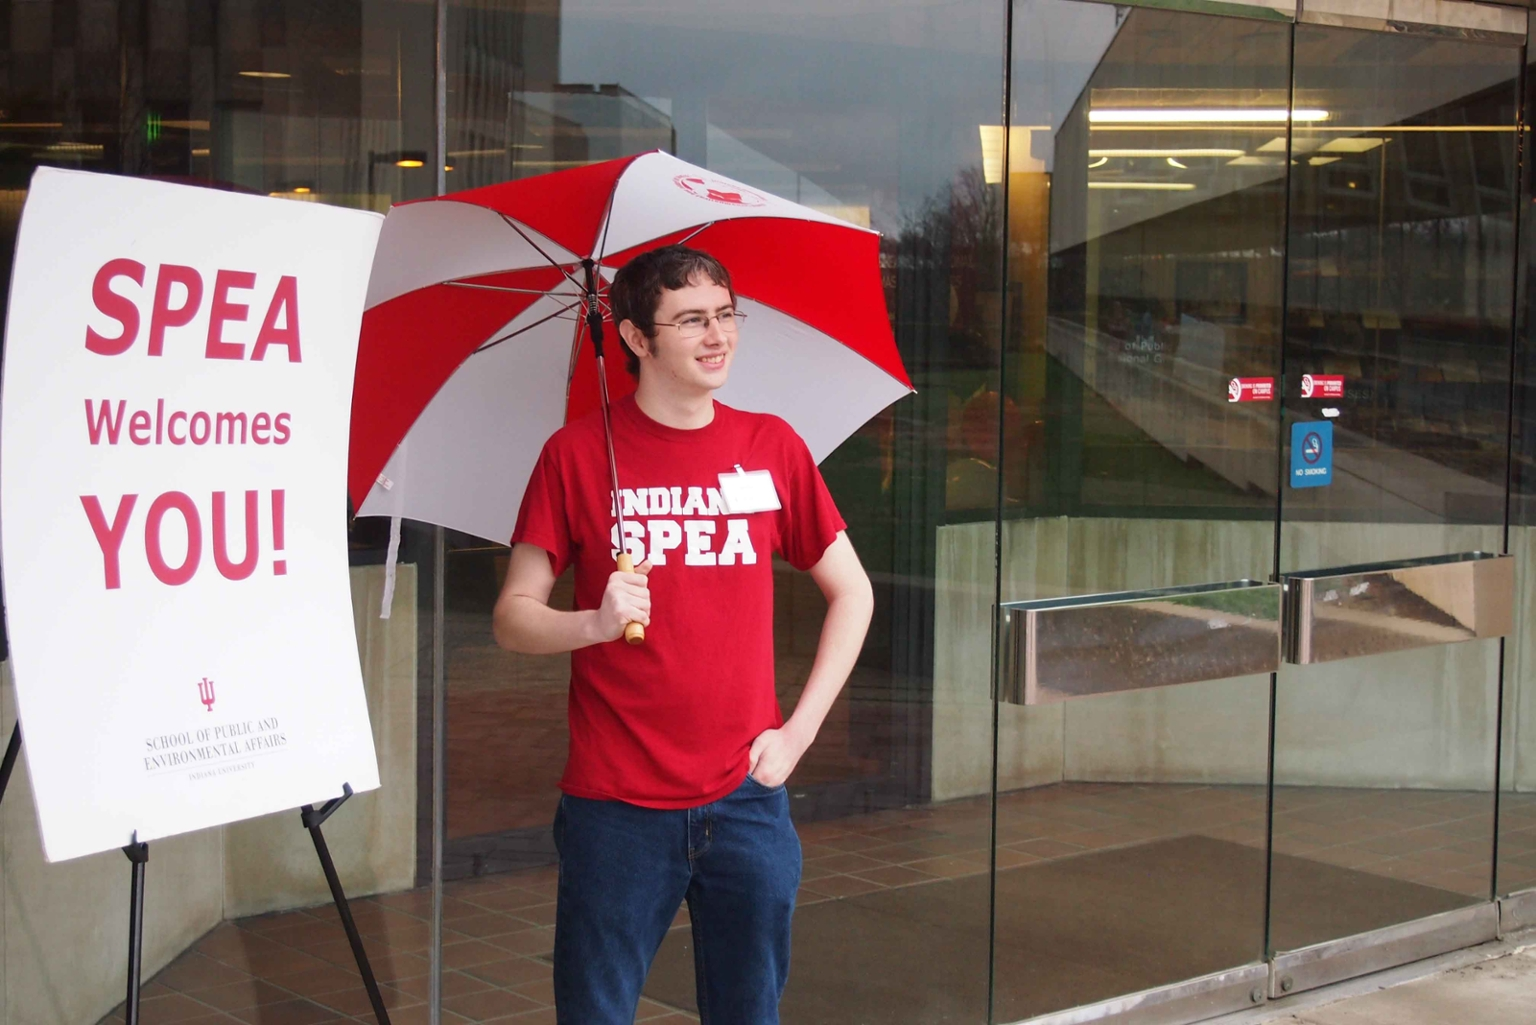 A student holds an umbrella by a welcome to SPEA sign.